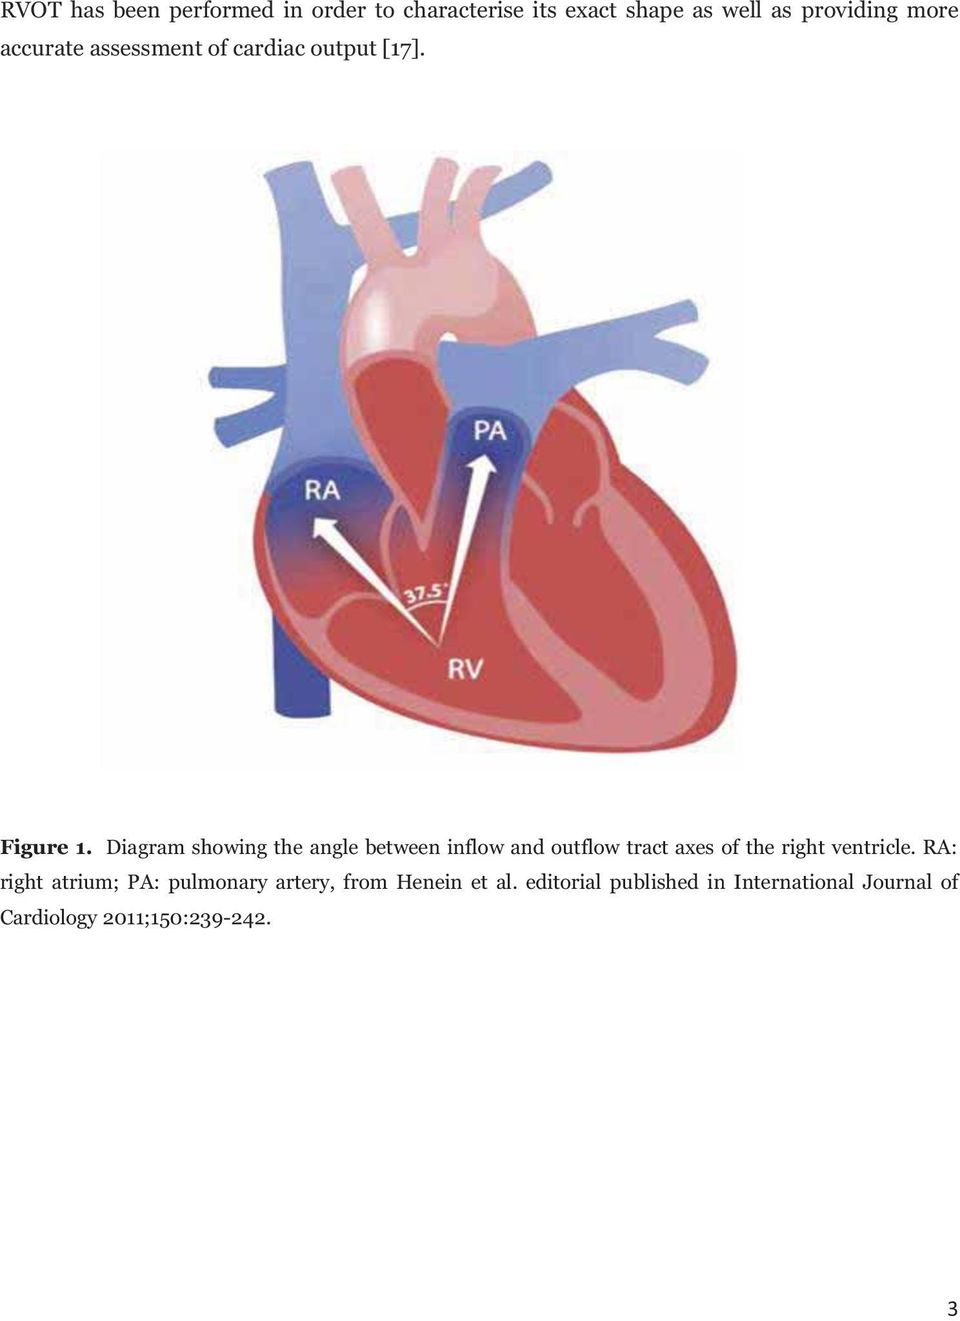 Diagram showing the angle between inflow and outflow tract axes of the right ventricle.